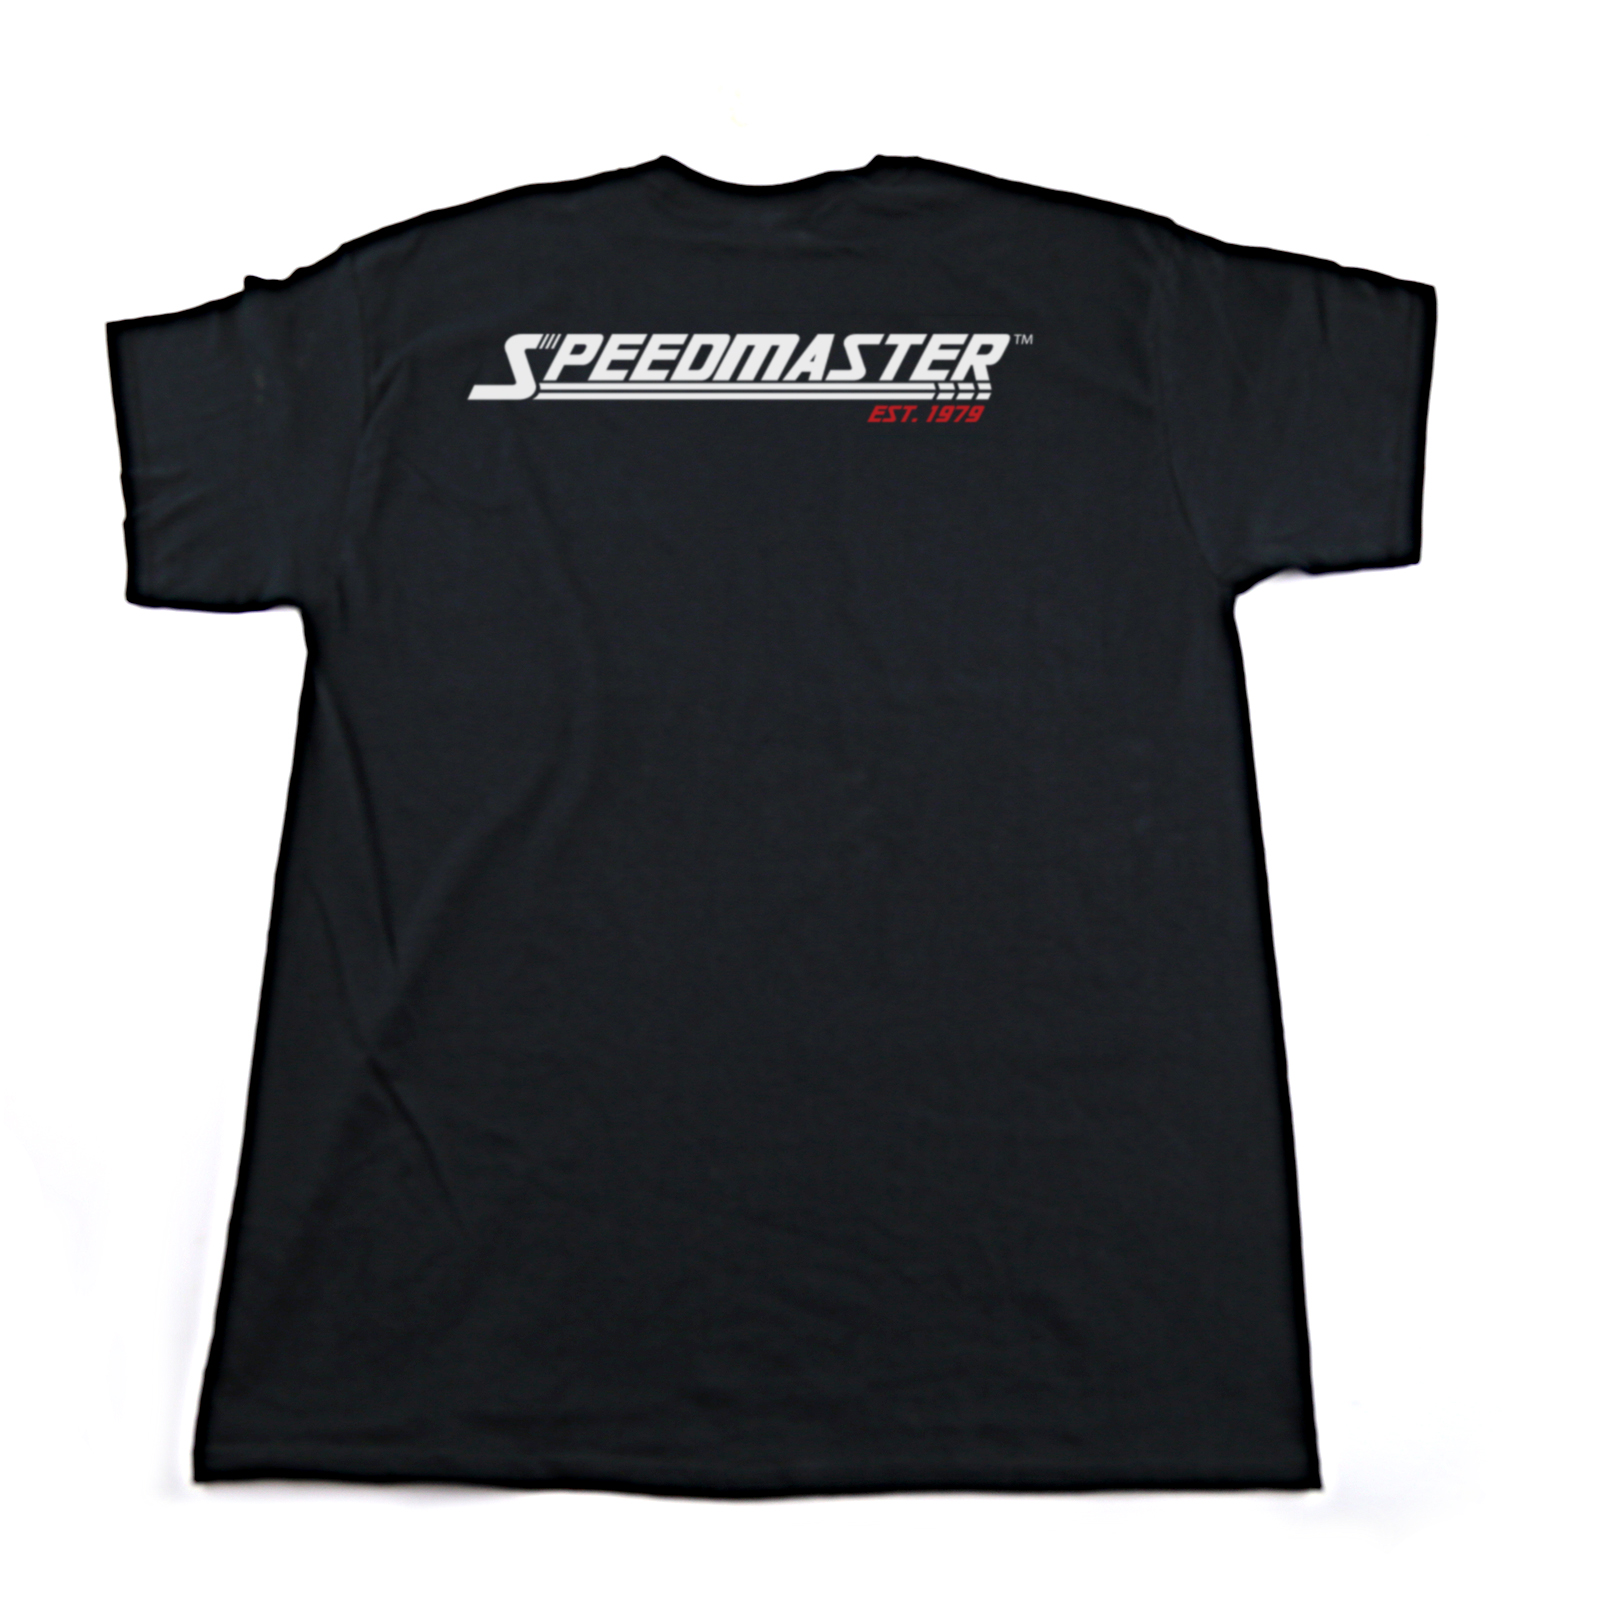 Speedmaster Black T-Shirt - Medium M